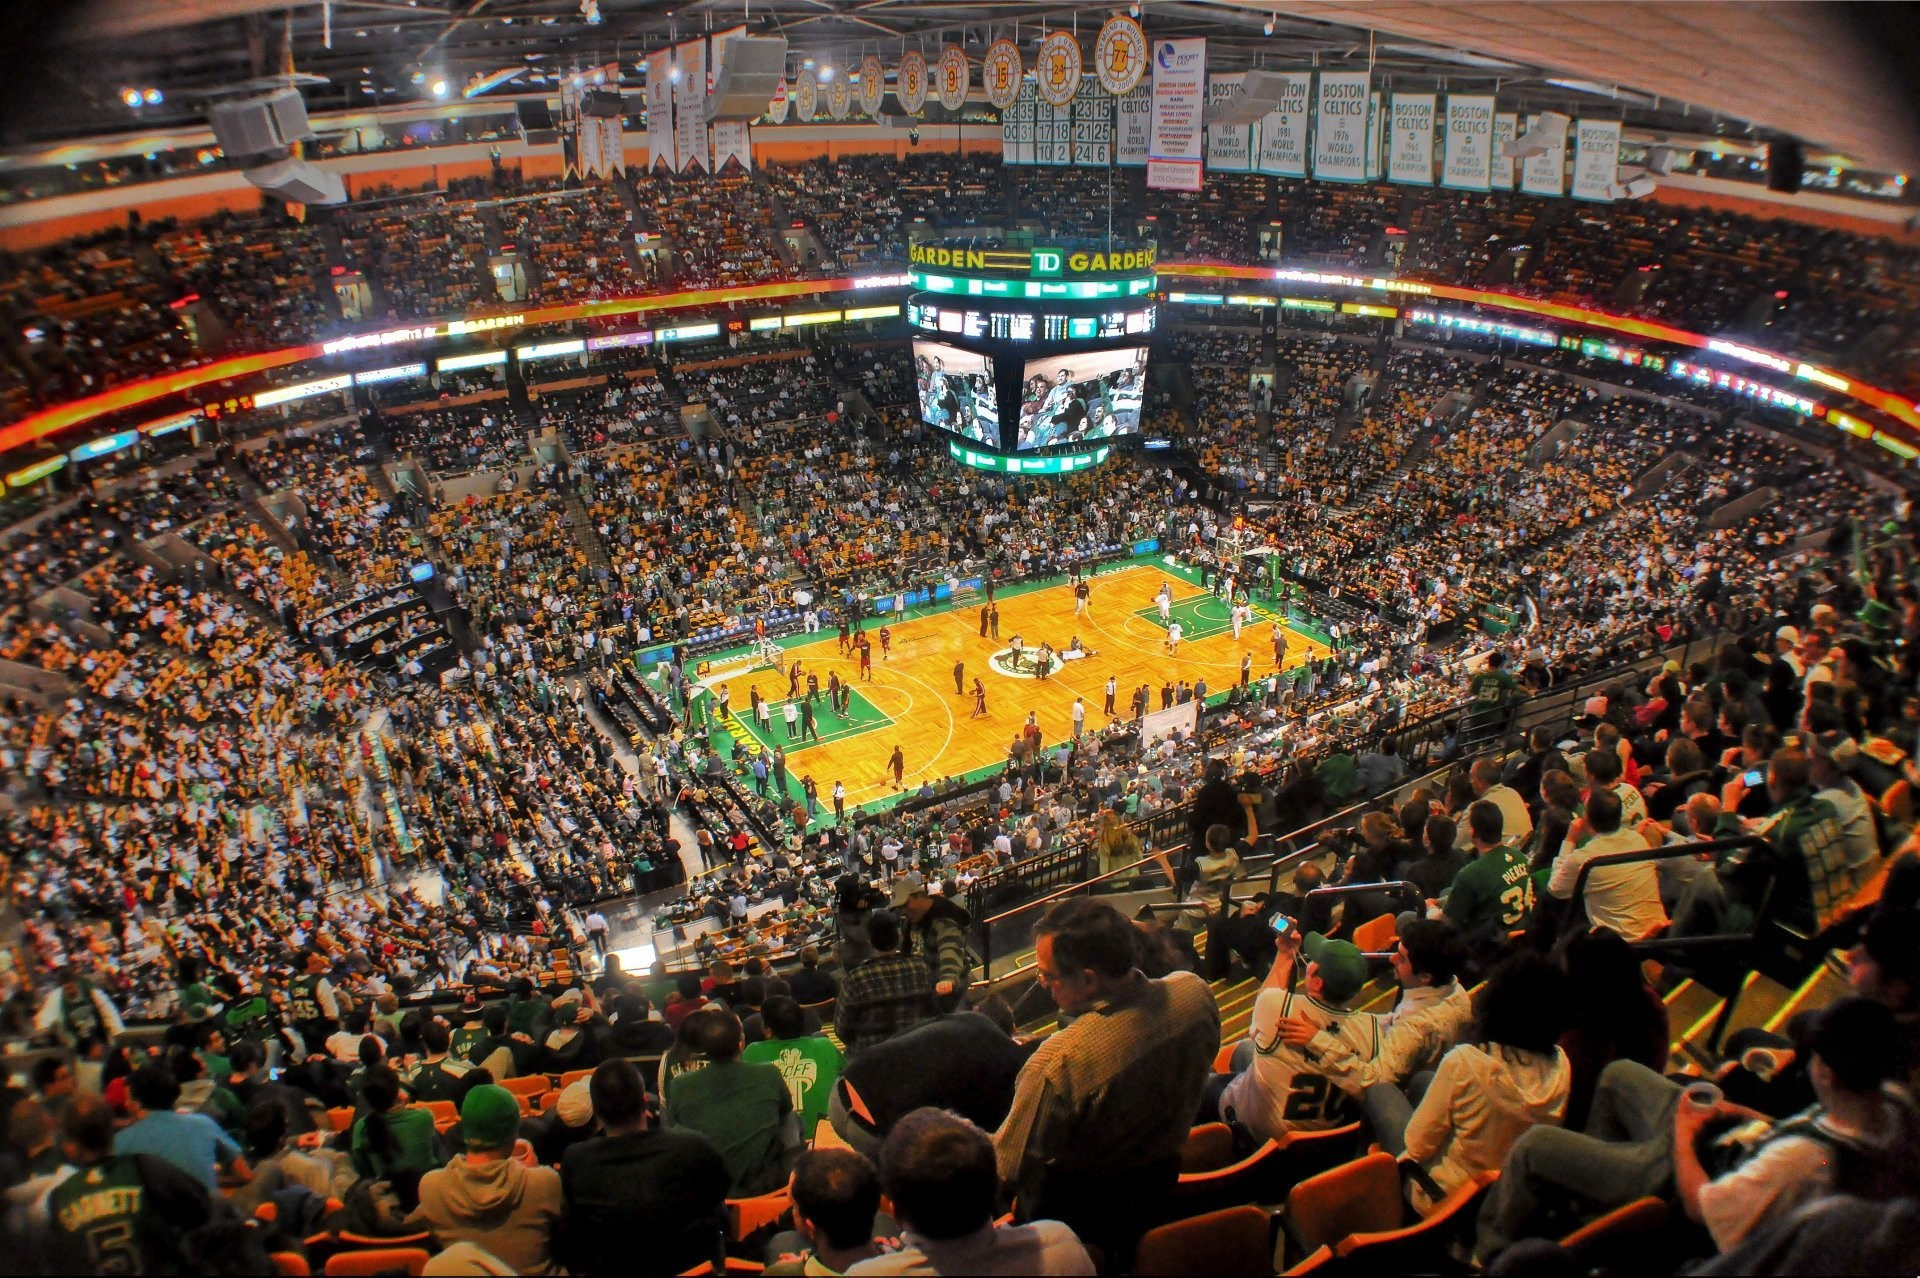 boston celtics and the garden people basketball